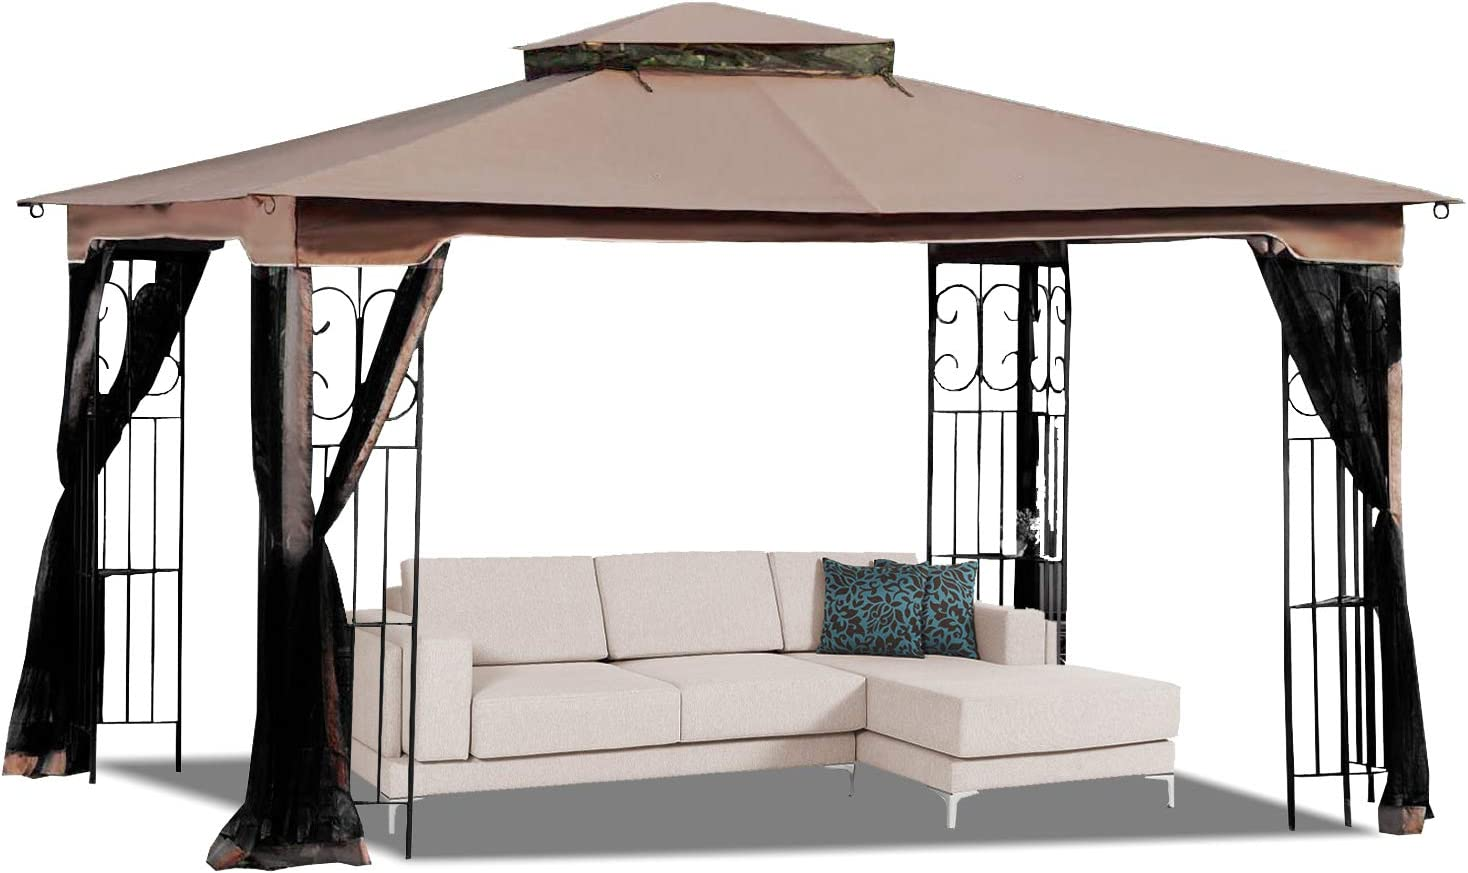 MasterCanopy 10' x 12' Gazebo Replacement Canopy Roof for Model GZ798PST-E(Only Top)